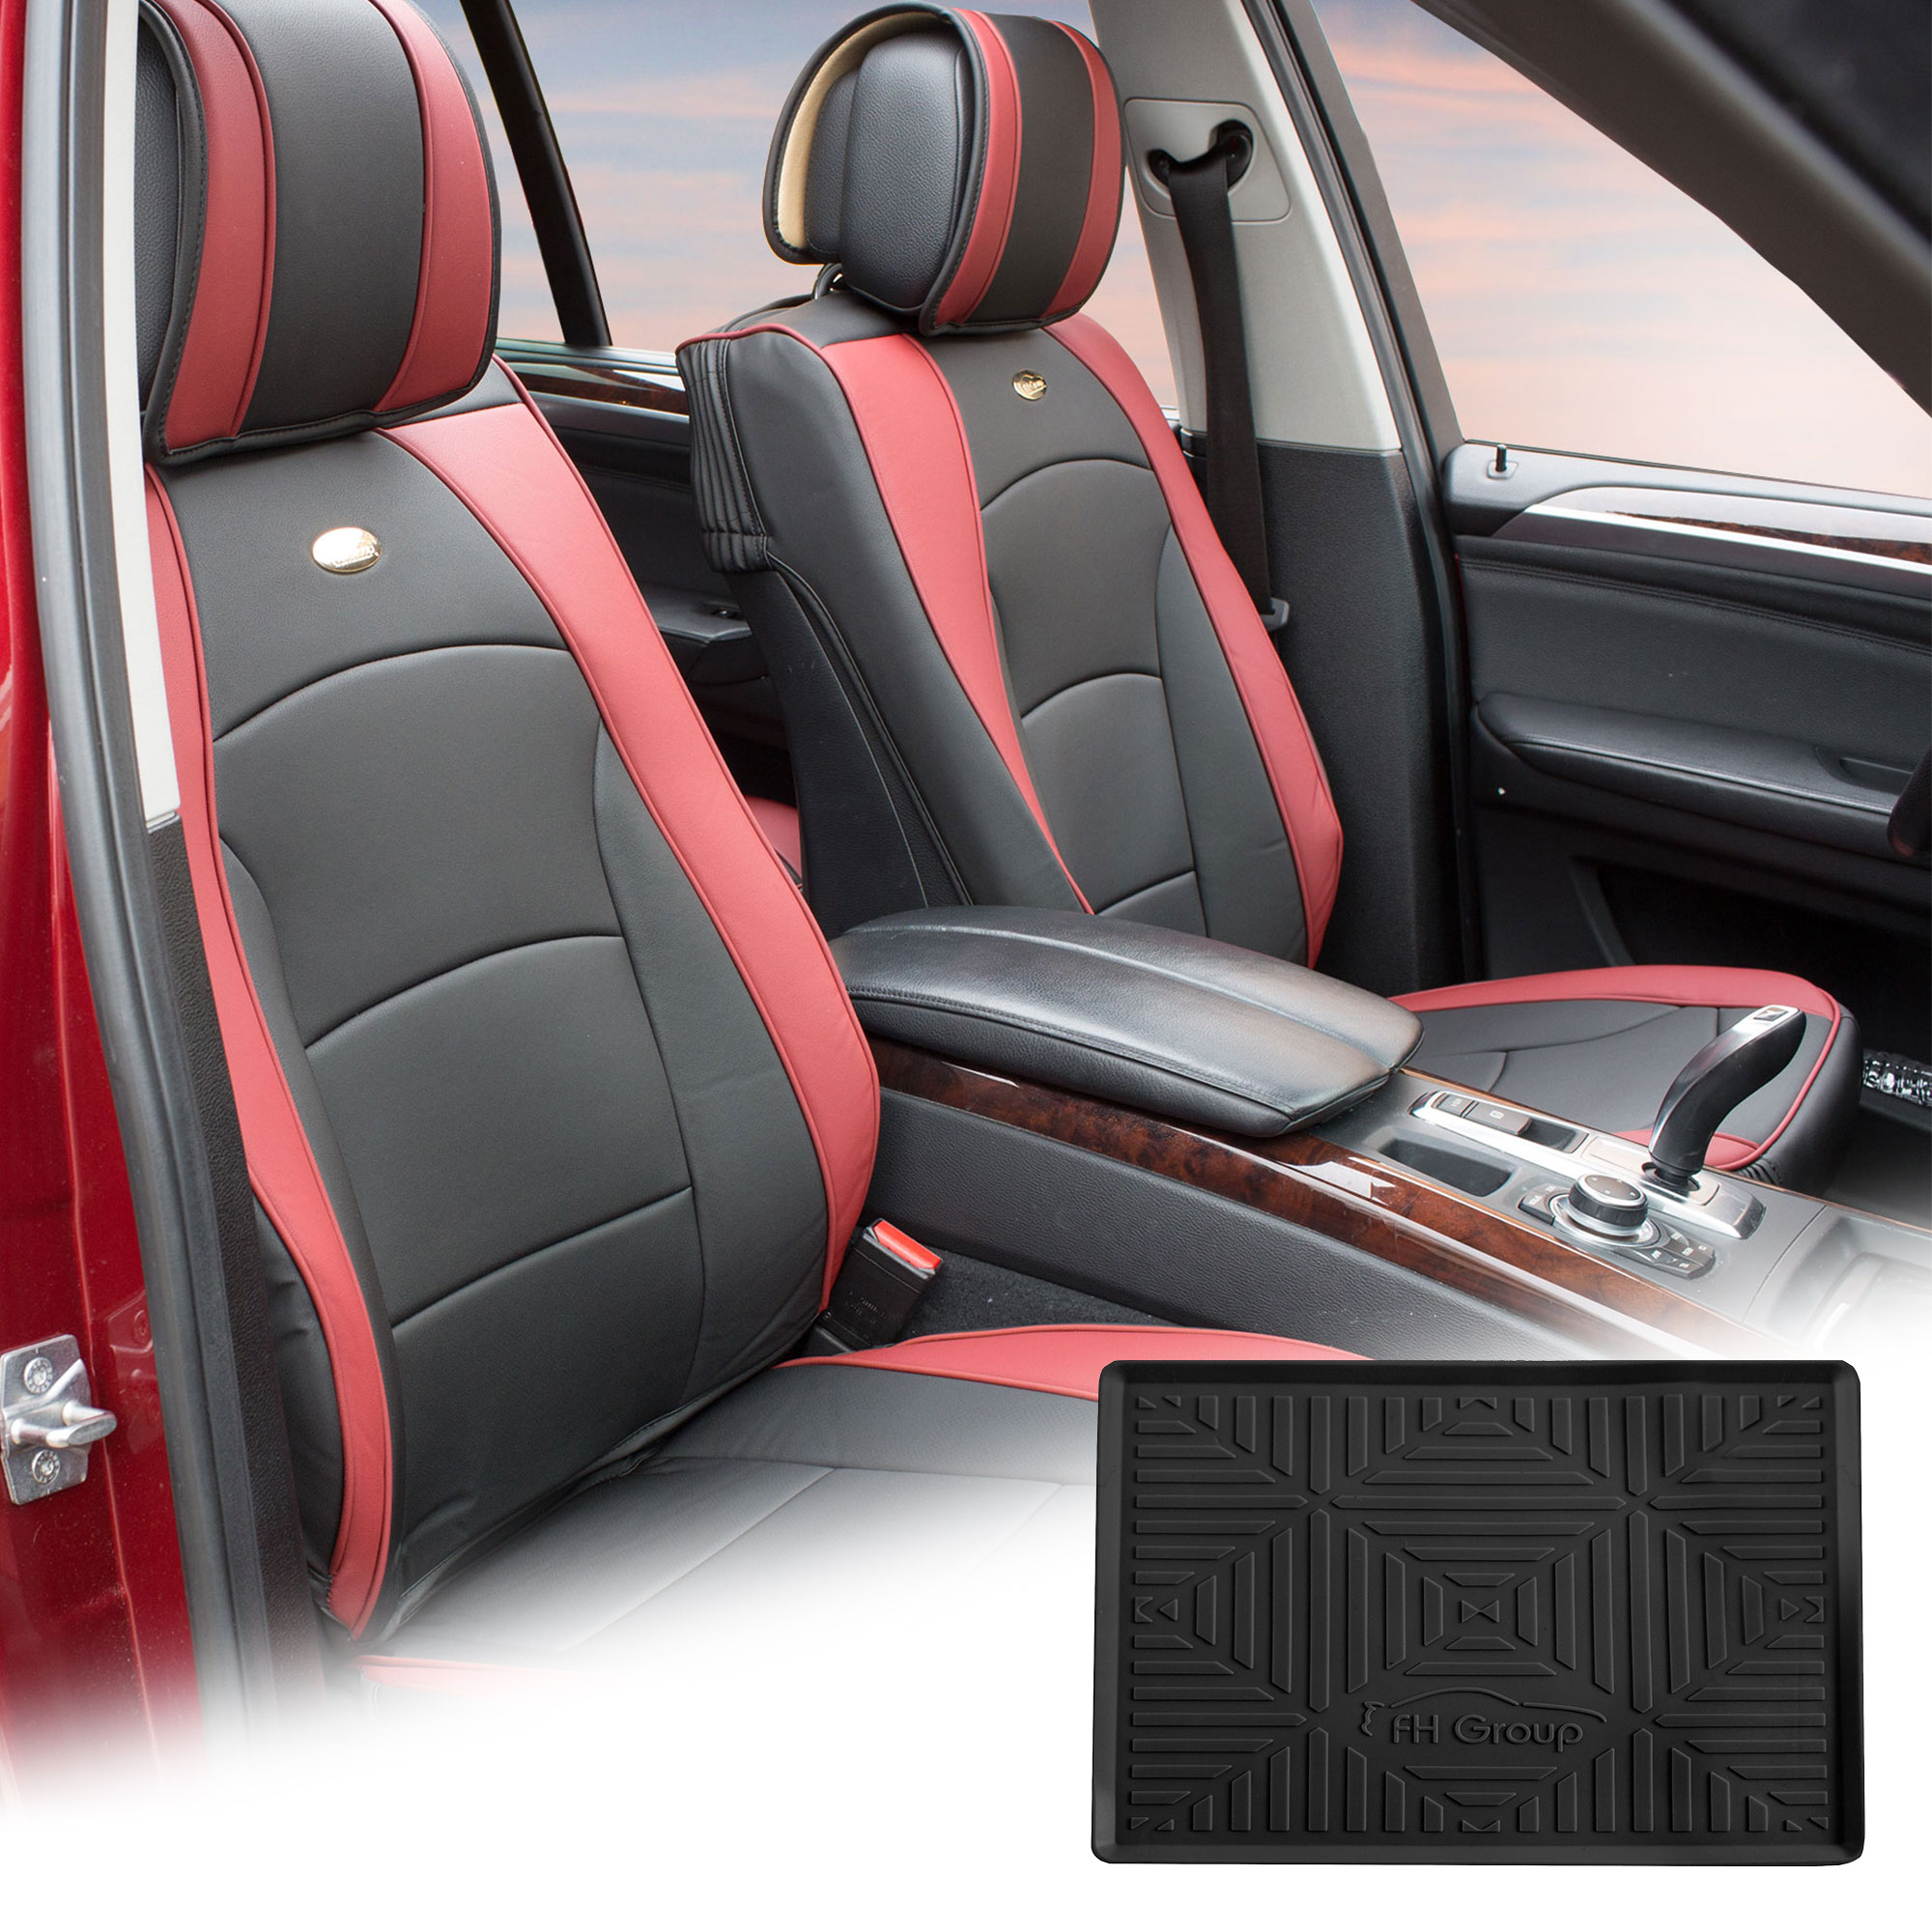 FH Group Burgundy Black PU Leather Front Bucket Seat Cushion Covers for Auto Car SUV Truck Van with Black Dash Mat Combo